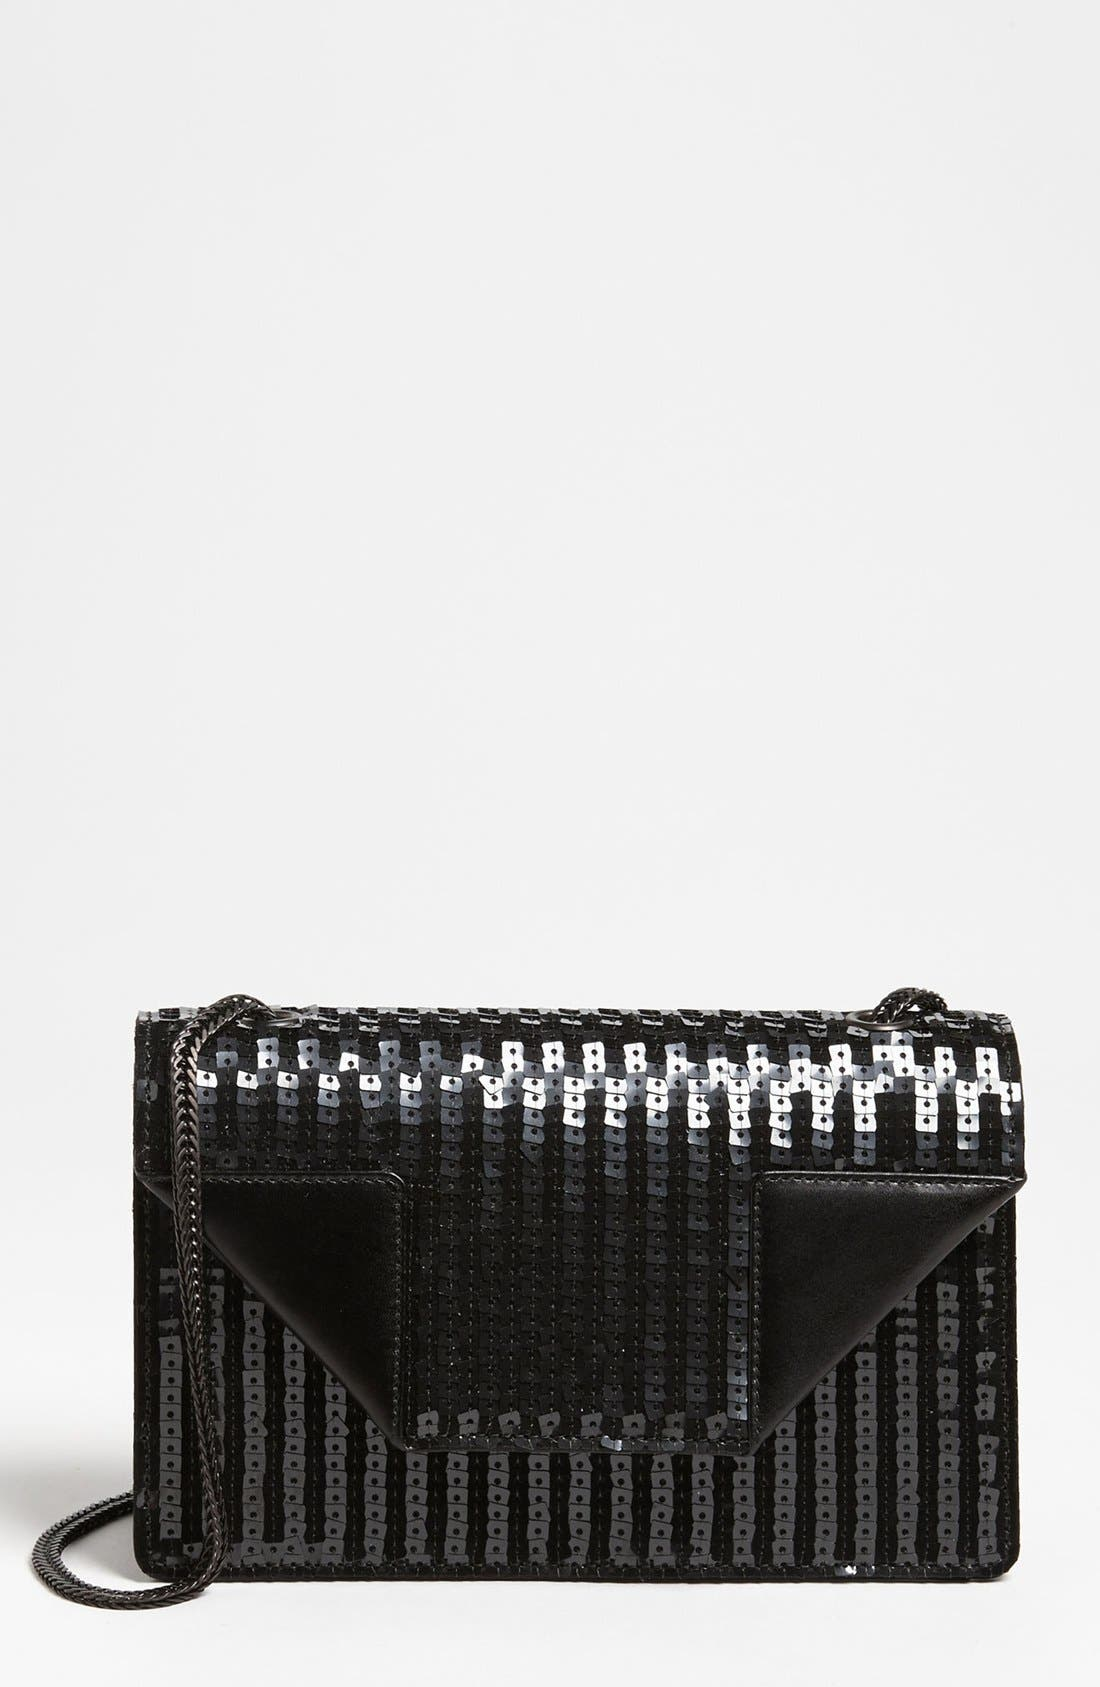 Main Image - Saint Laurent 'Betty' Sequin Leather Shoulder Bag